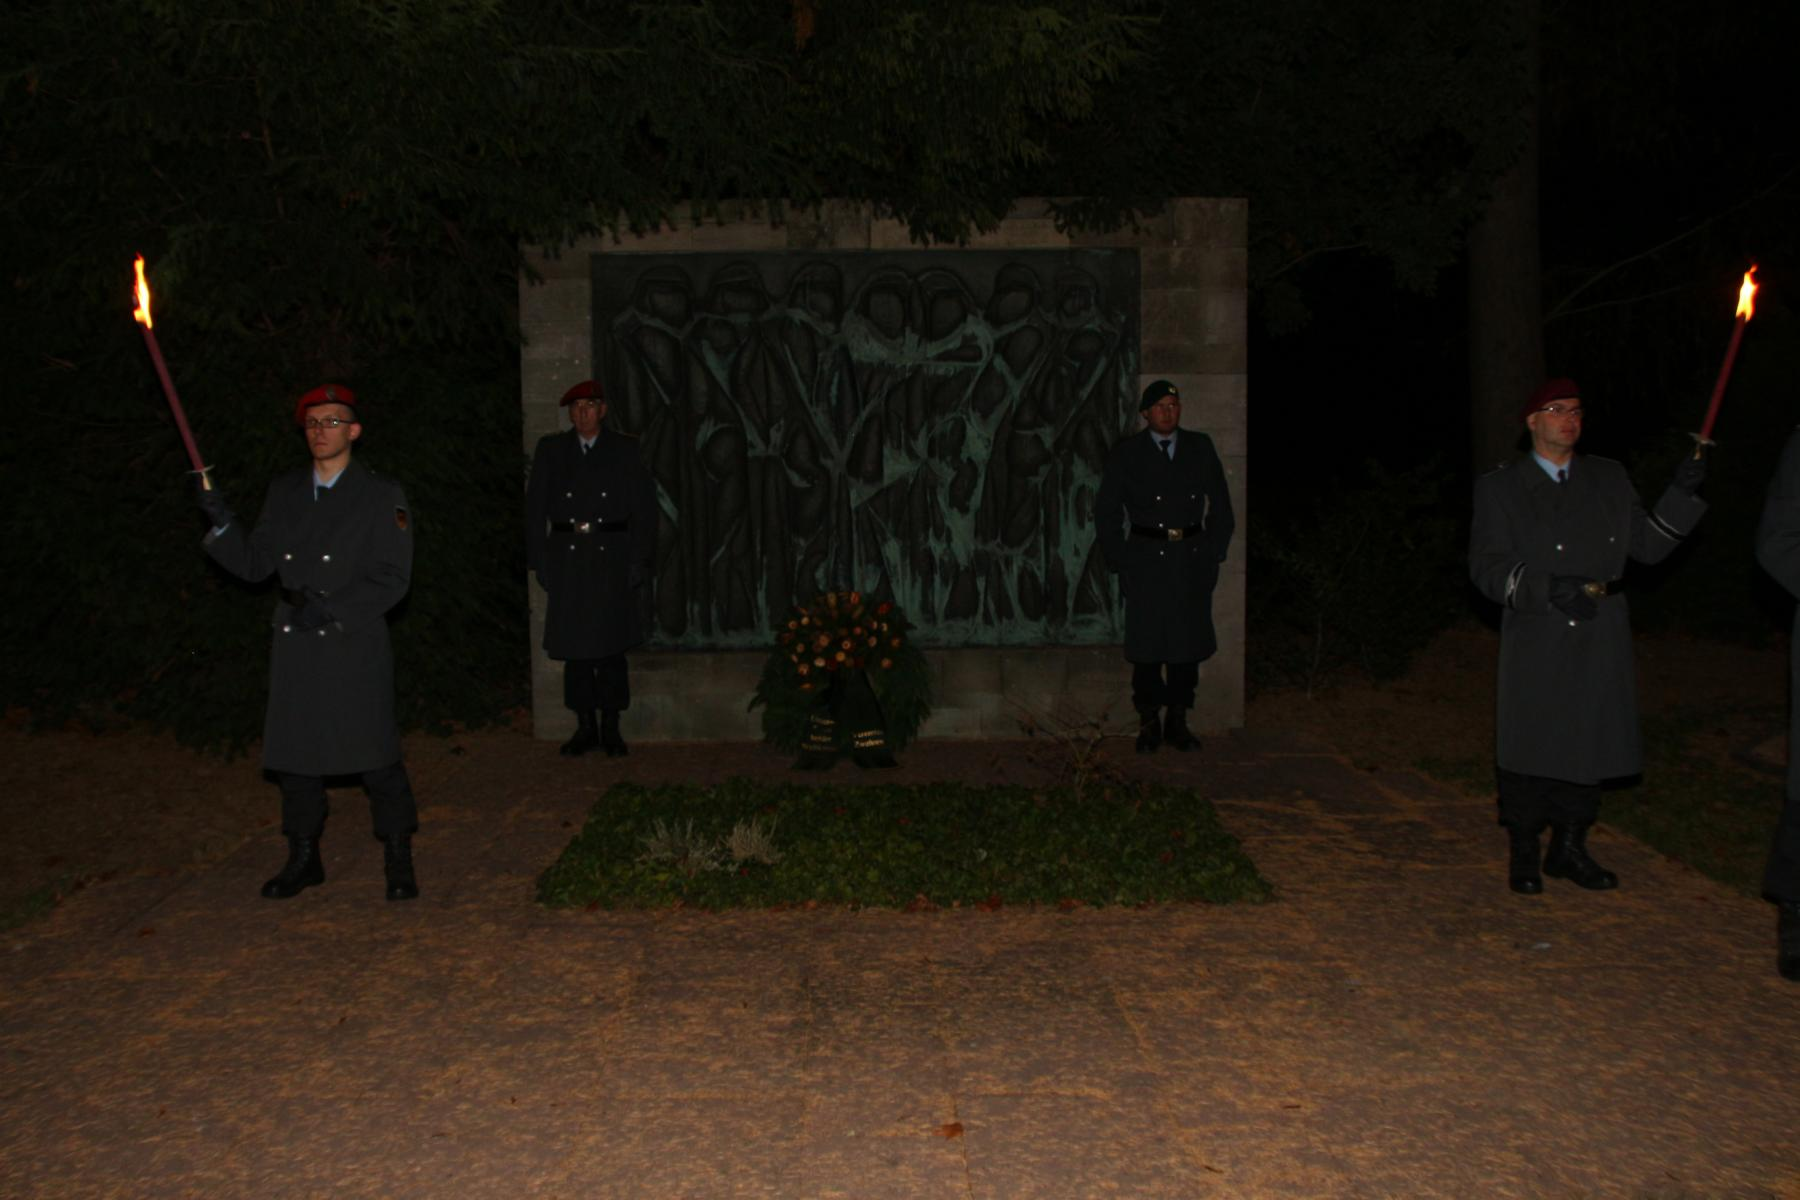 Mahnmal für die Bombenopfer auf dem, Friedhof NIEDERZWEHREN